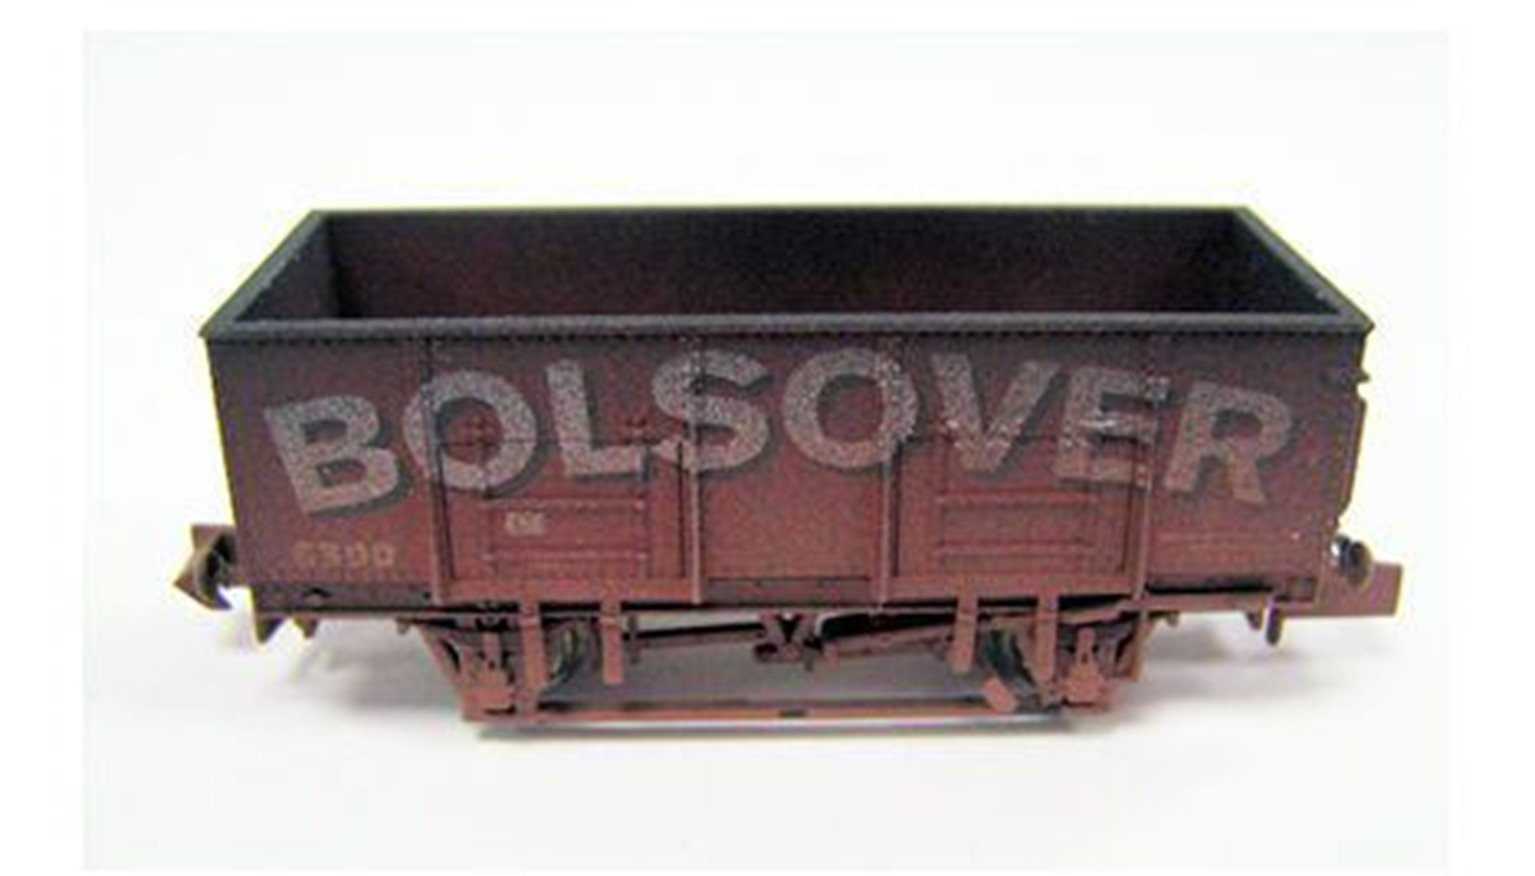 Dapol 2F-038-014 Bolsover 20 Ton Steel Mineral Wagon - Weathered